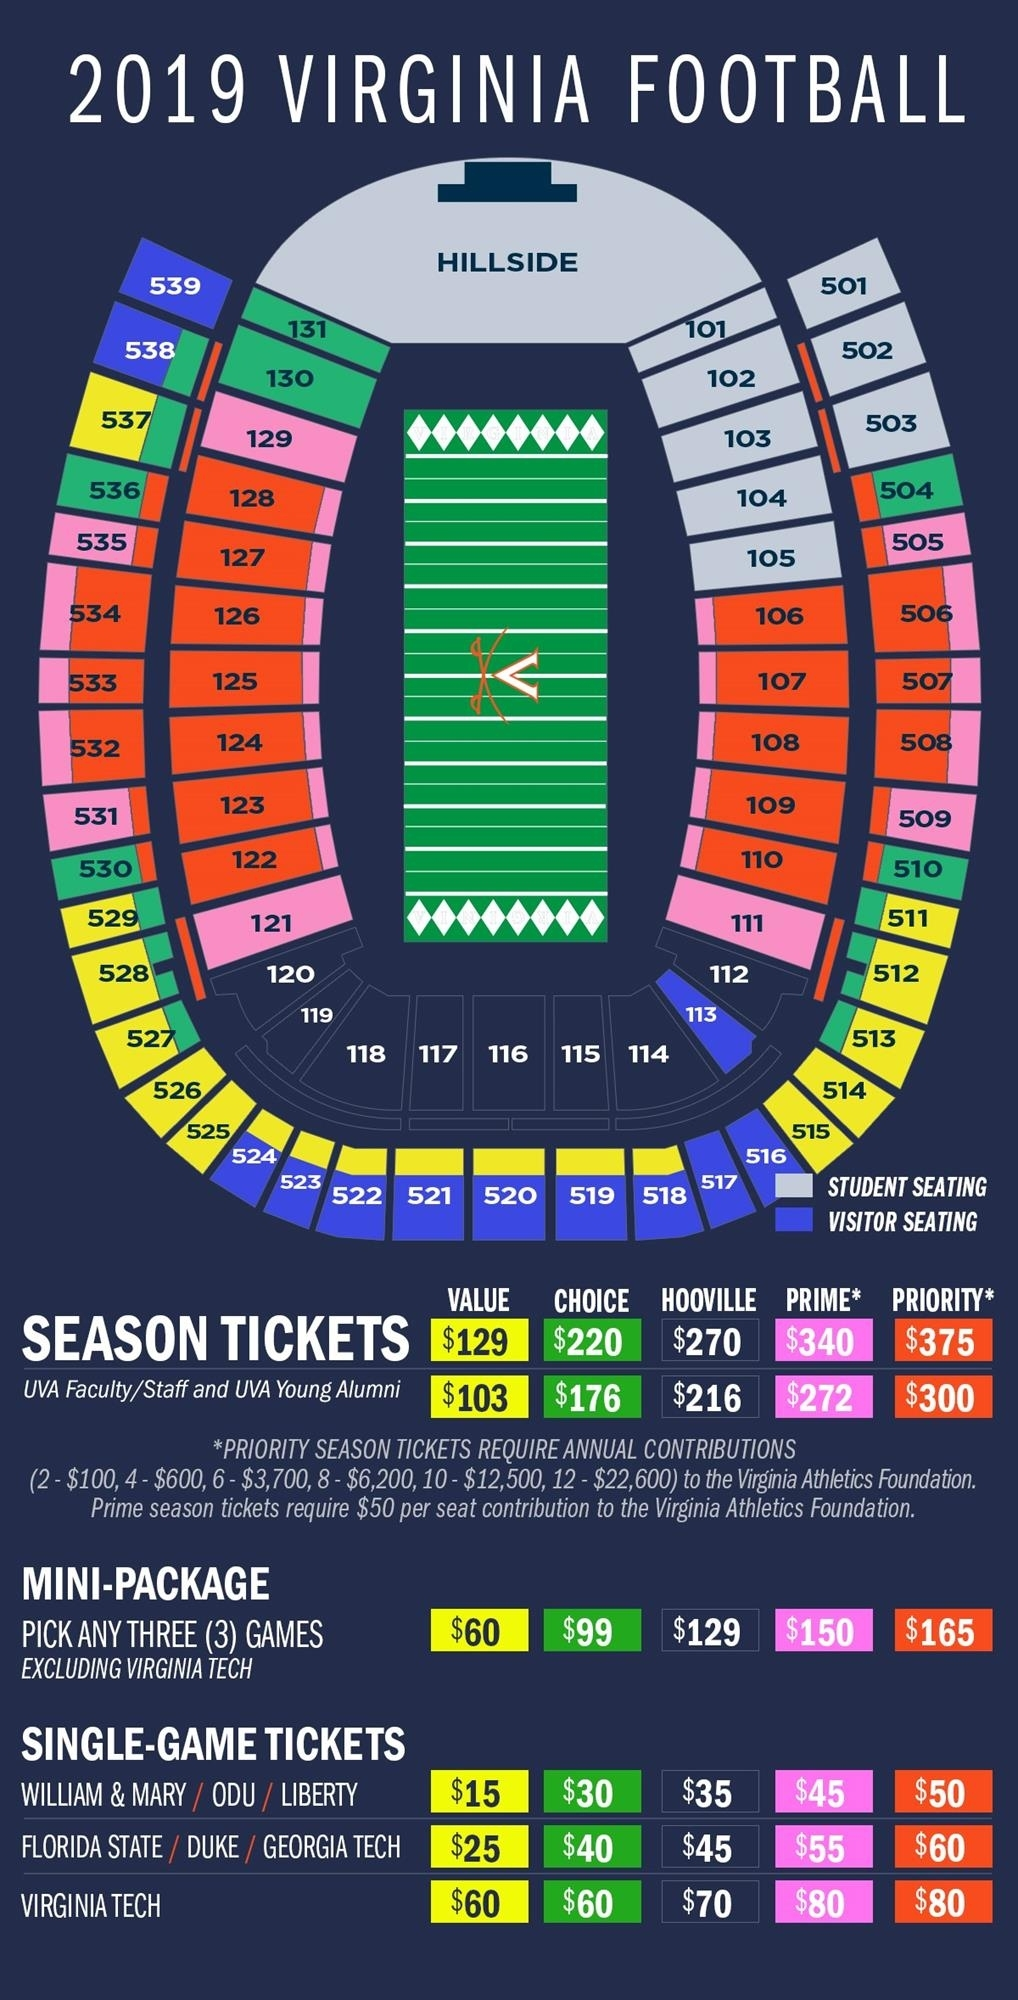 2019 Football Ticket Information - University Of Virginia throughout Seating Chart For Super Bowl 2019